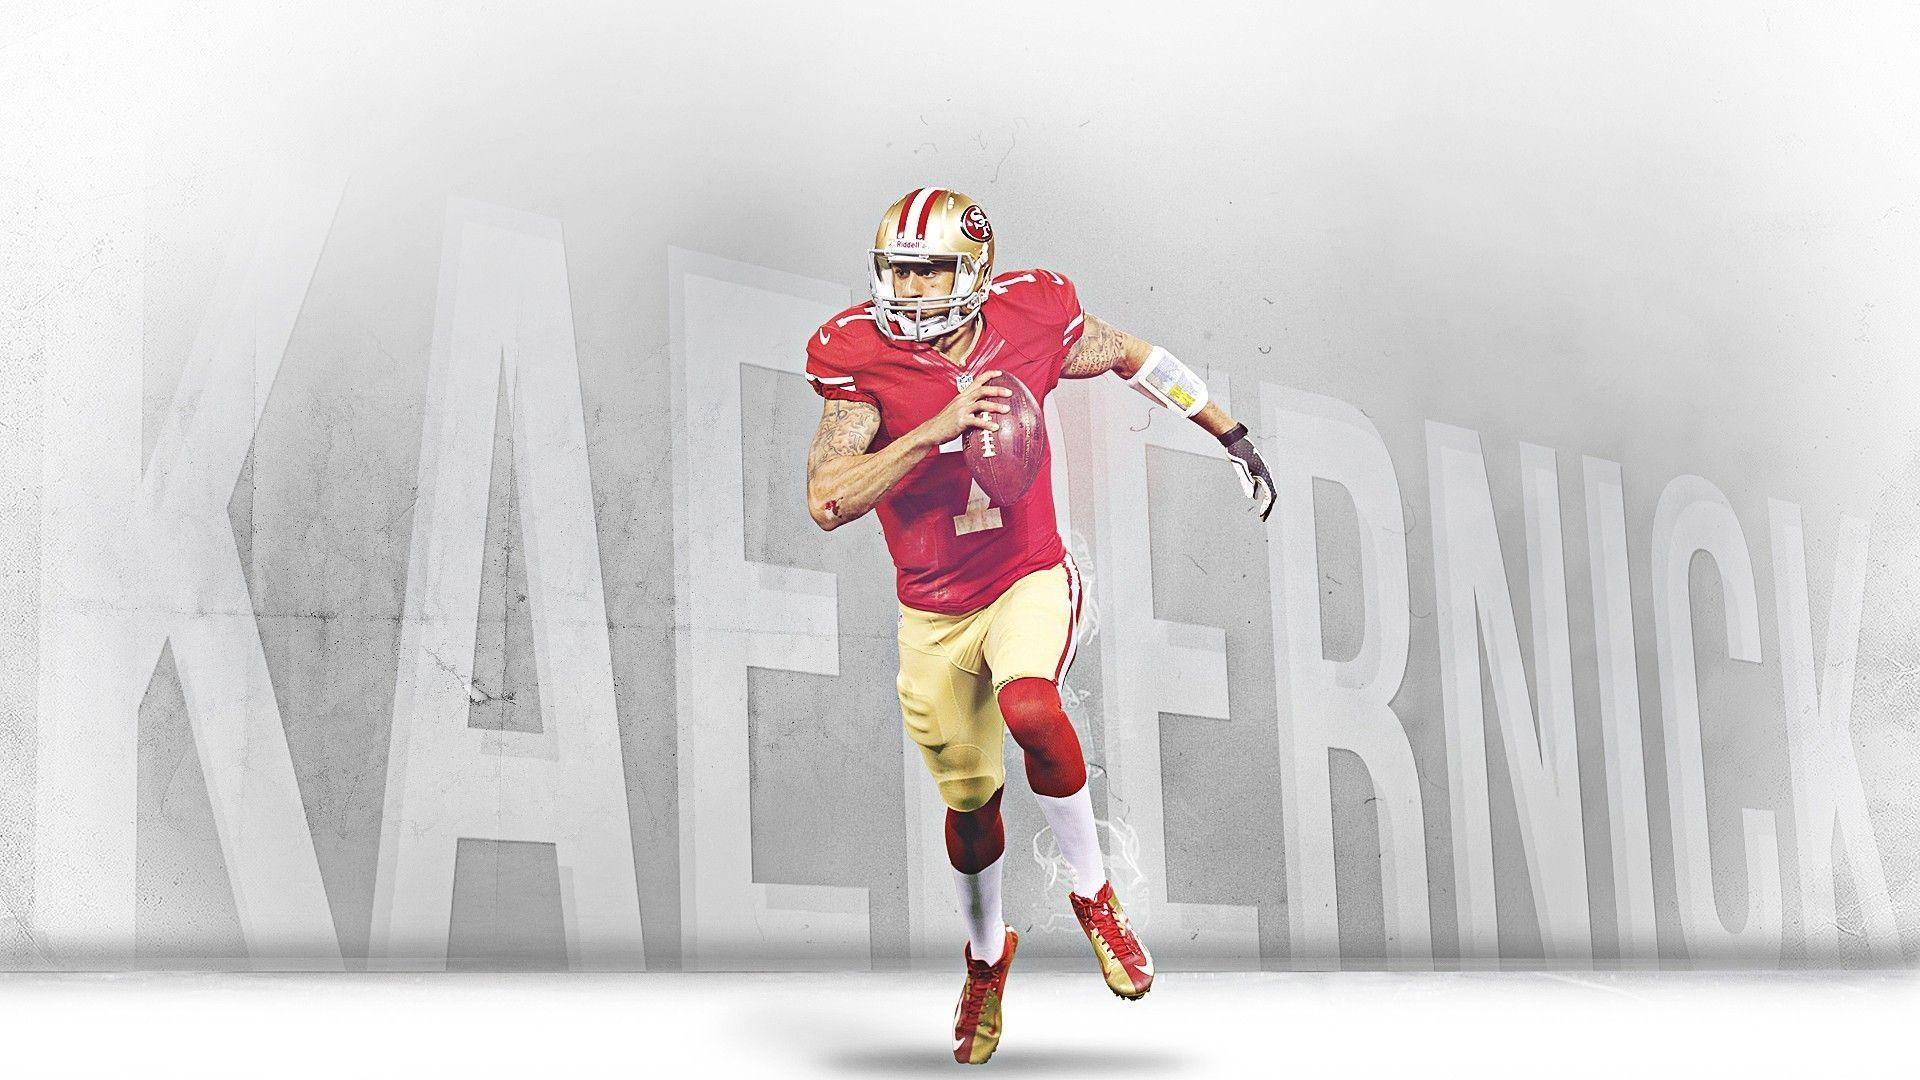 Colin Kaepernick 49ers Wallpapers 1920x1080